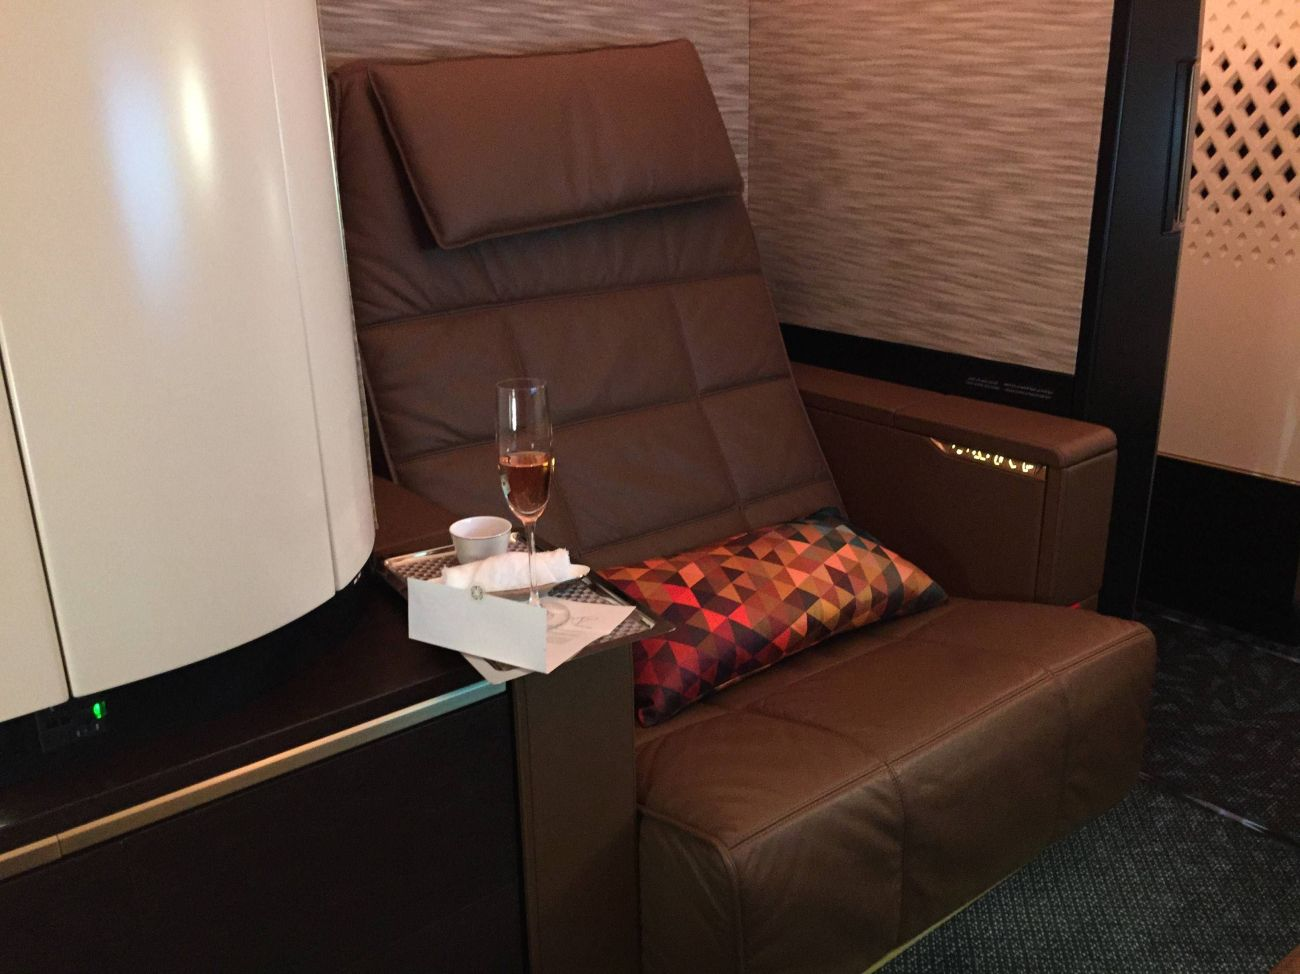 First Class Apartment A380 Etihad - PassageirodePrimeira31